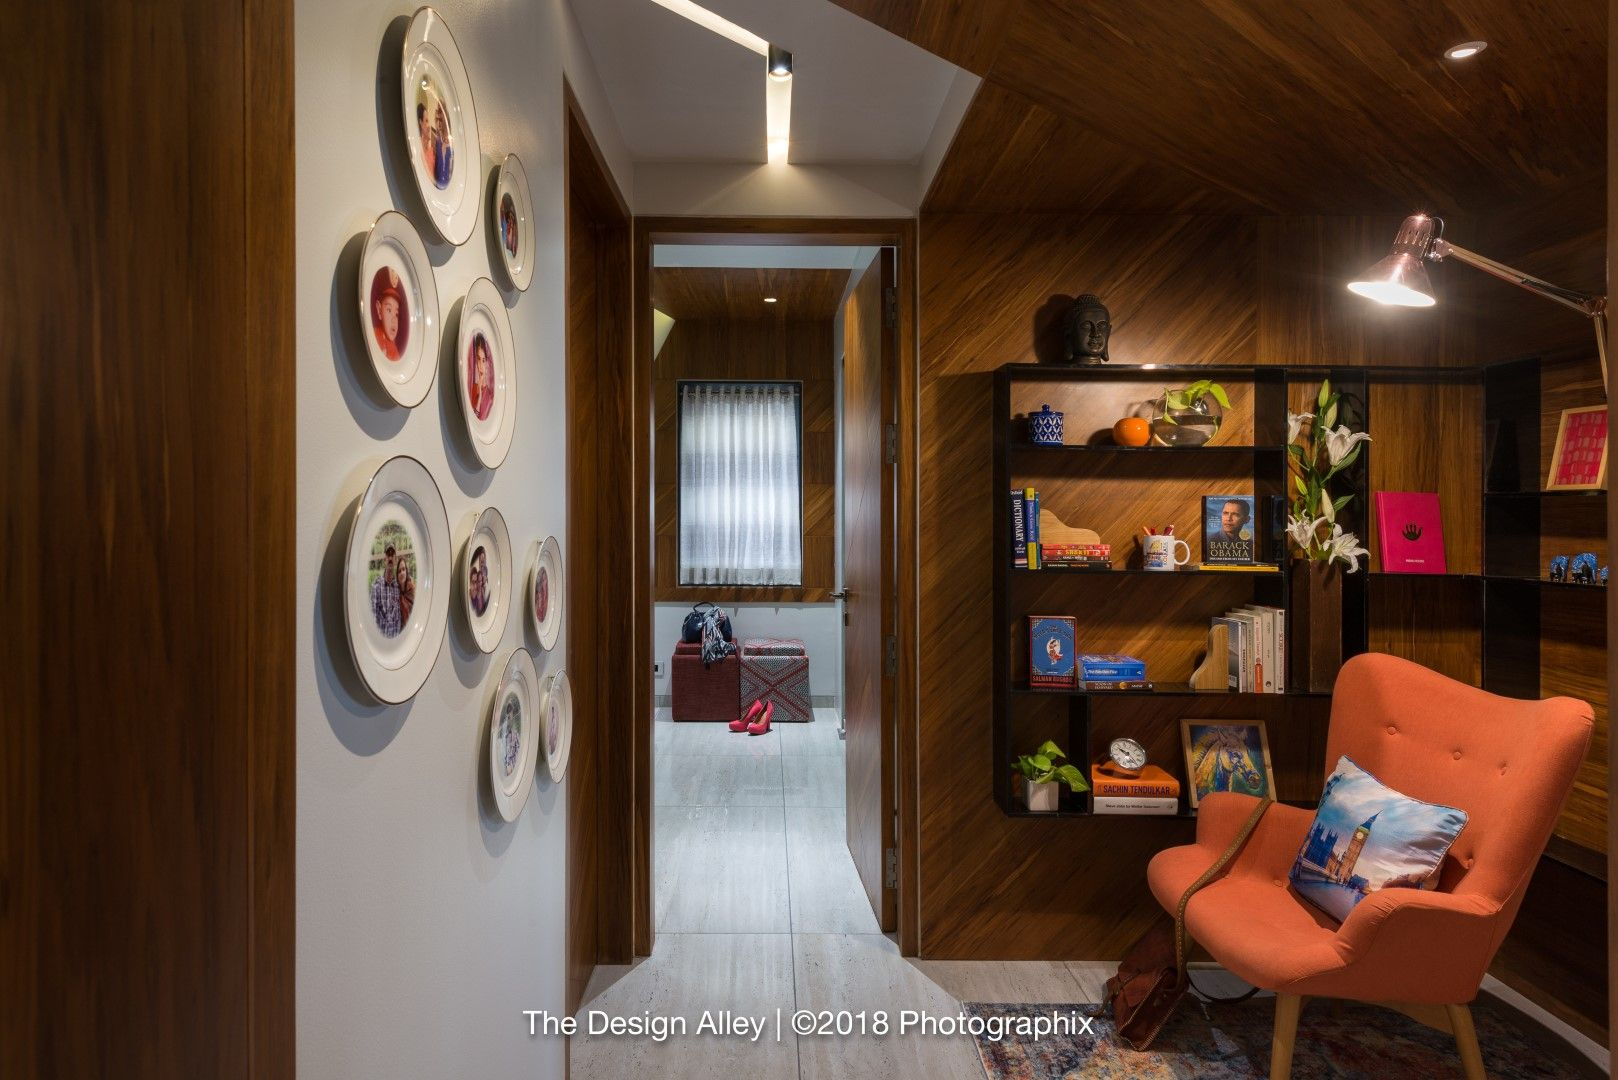 bhk apartment capture the essence of their rajasthani roots design alley architects diary also art rh in pinterest